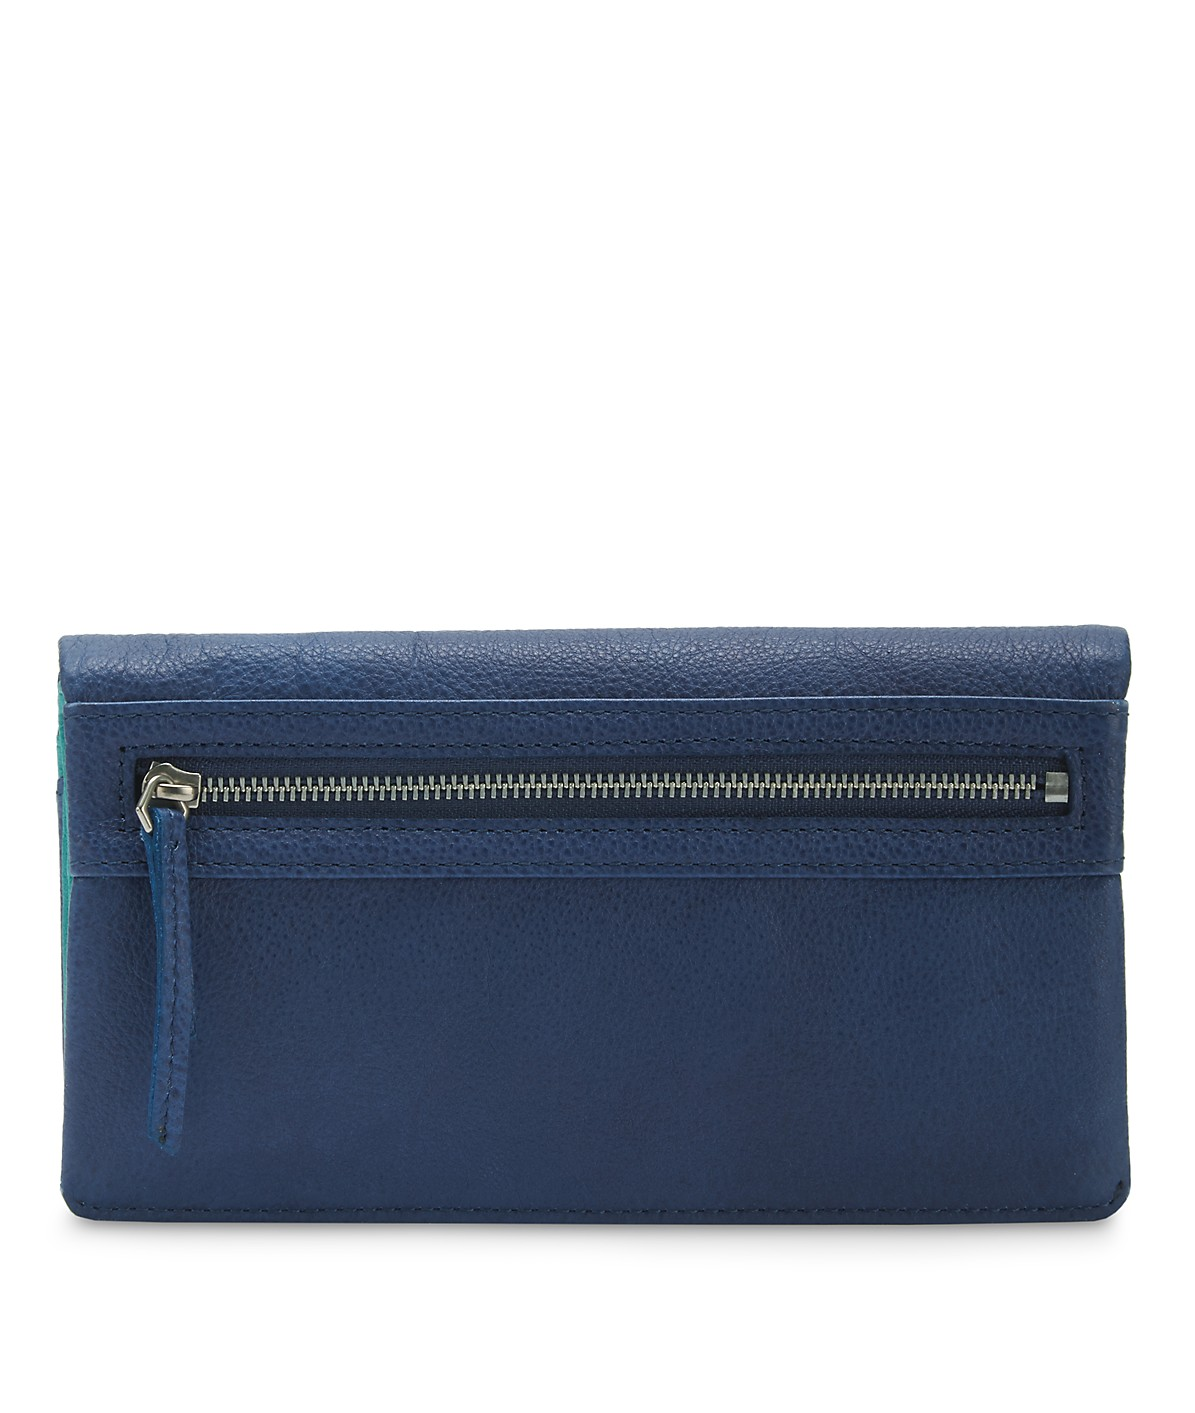 SlamF7 wallet from liebeskind